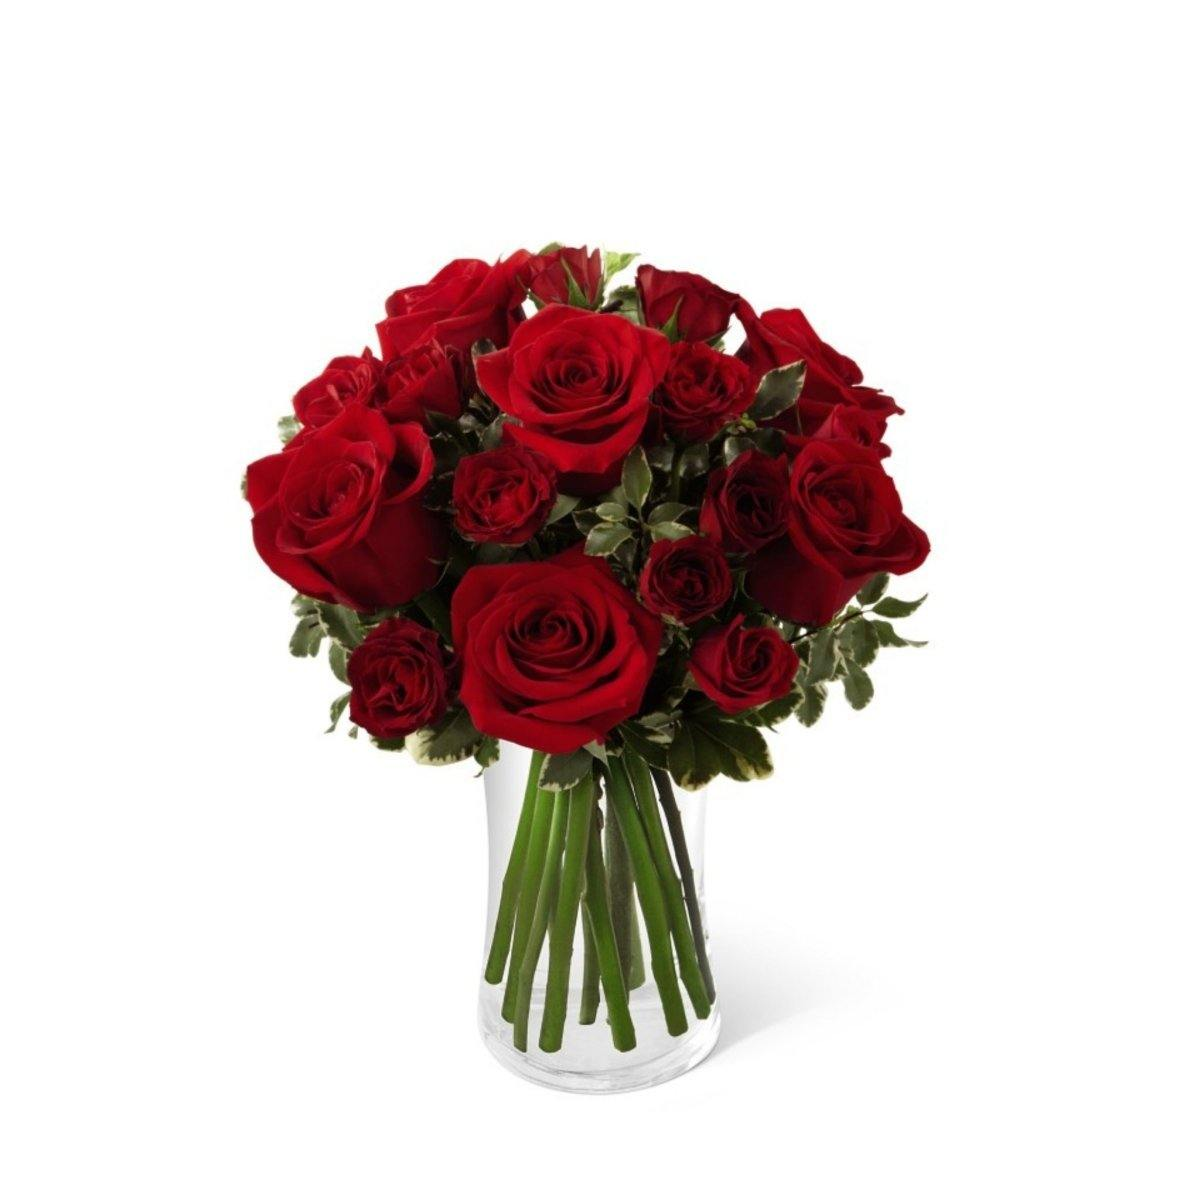 The FTD Red Romance Rose Bouquet - Shalimar Flower Shop